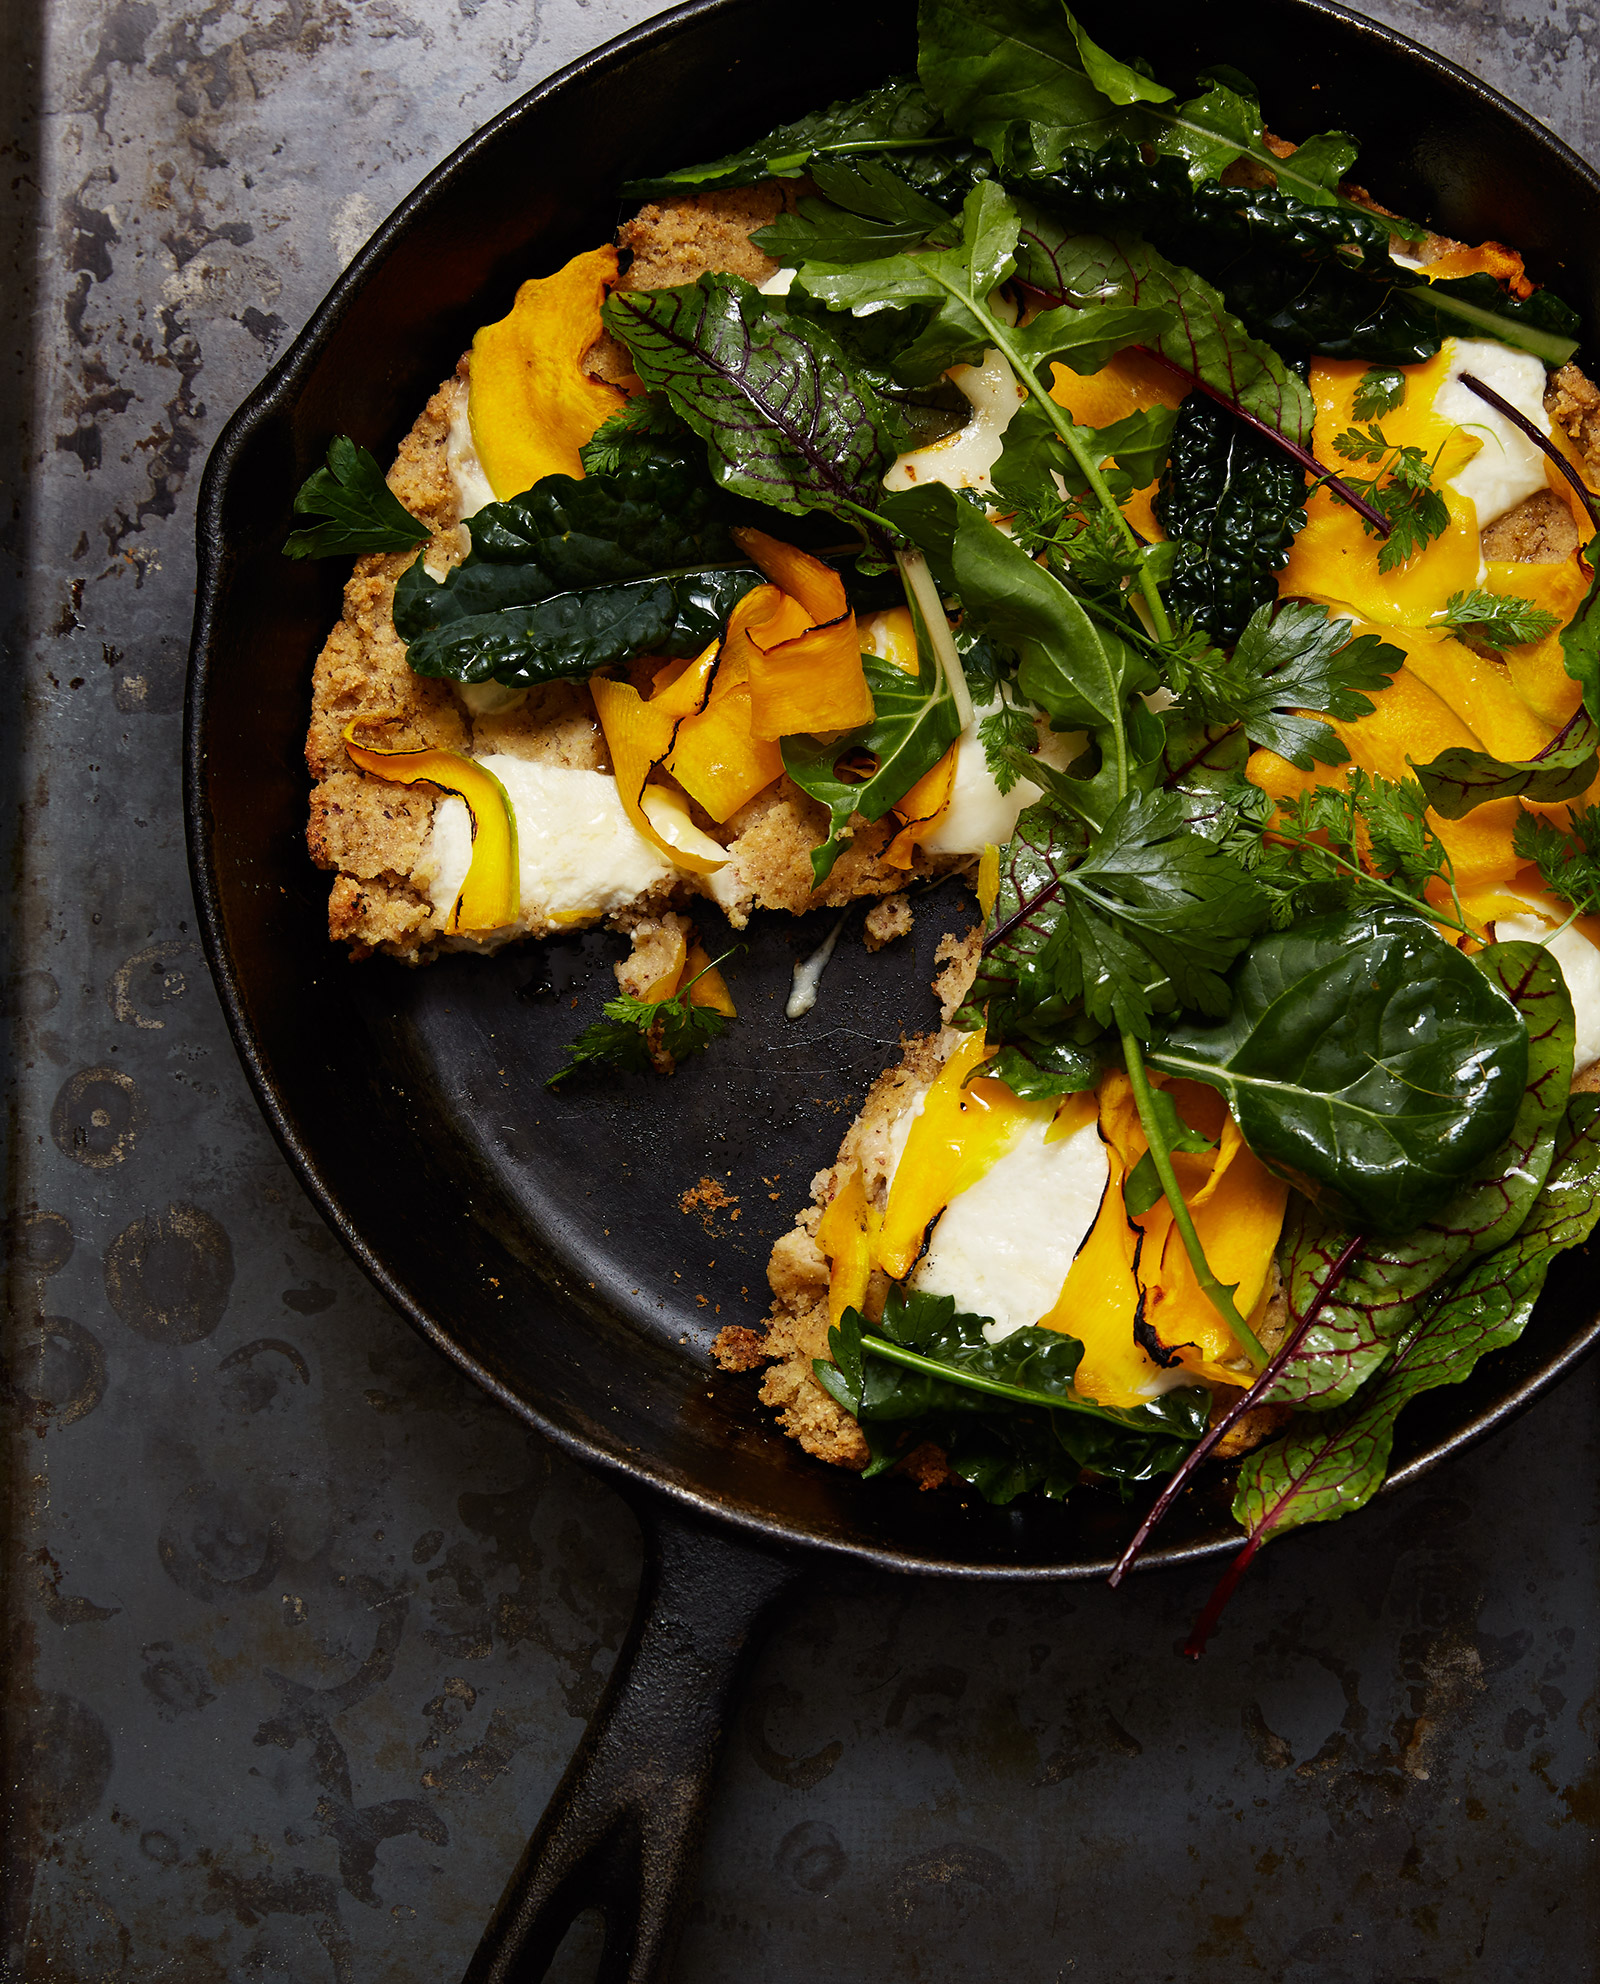 gluten free cast iron pan with skillet flatbread with squash, greens, and burrata pizza